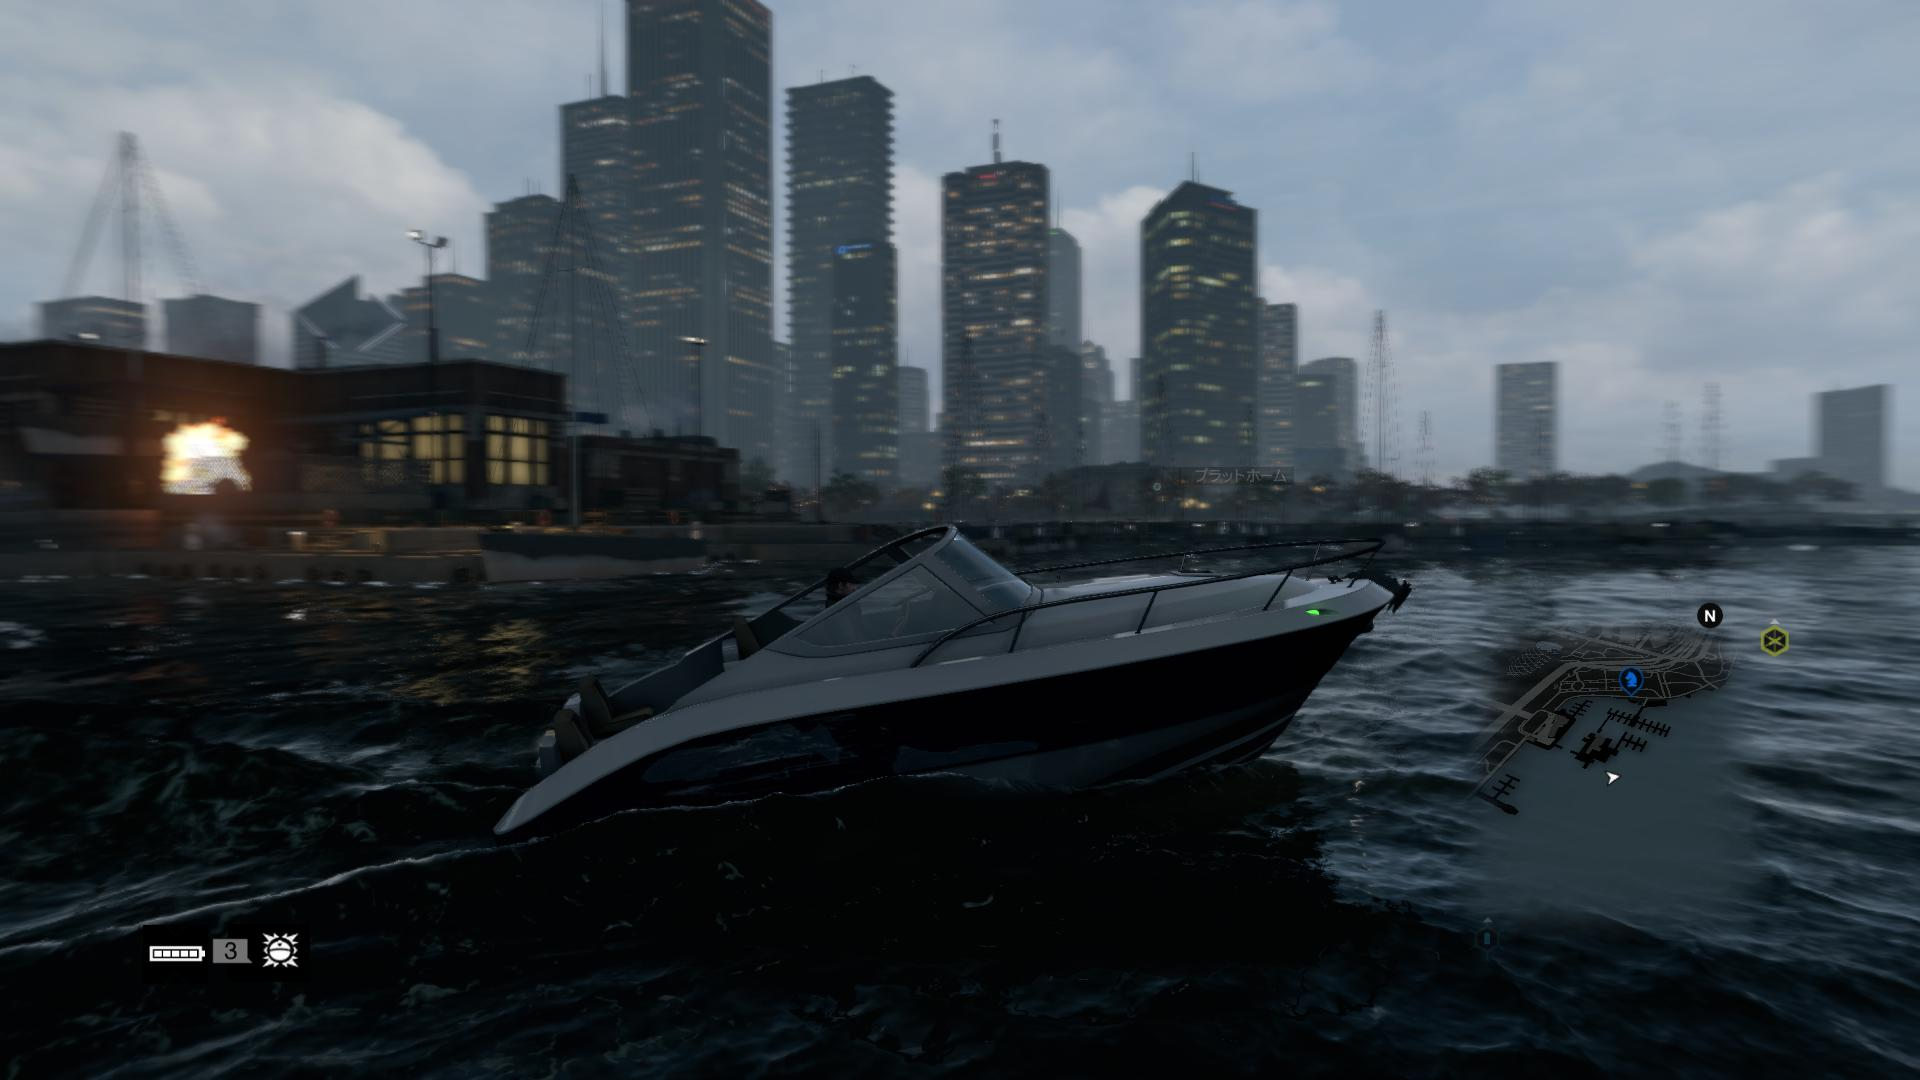 okla_blog_I_watchdogs_04.jpg